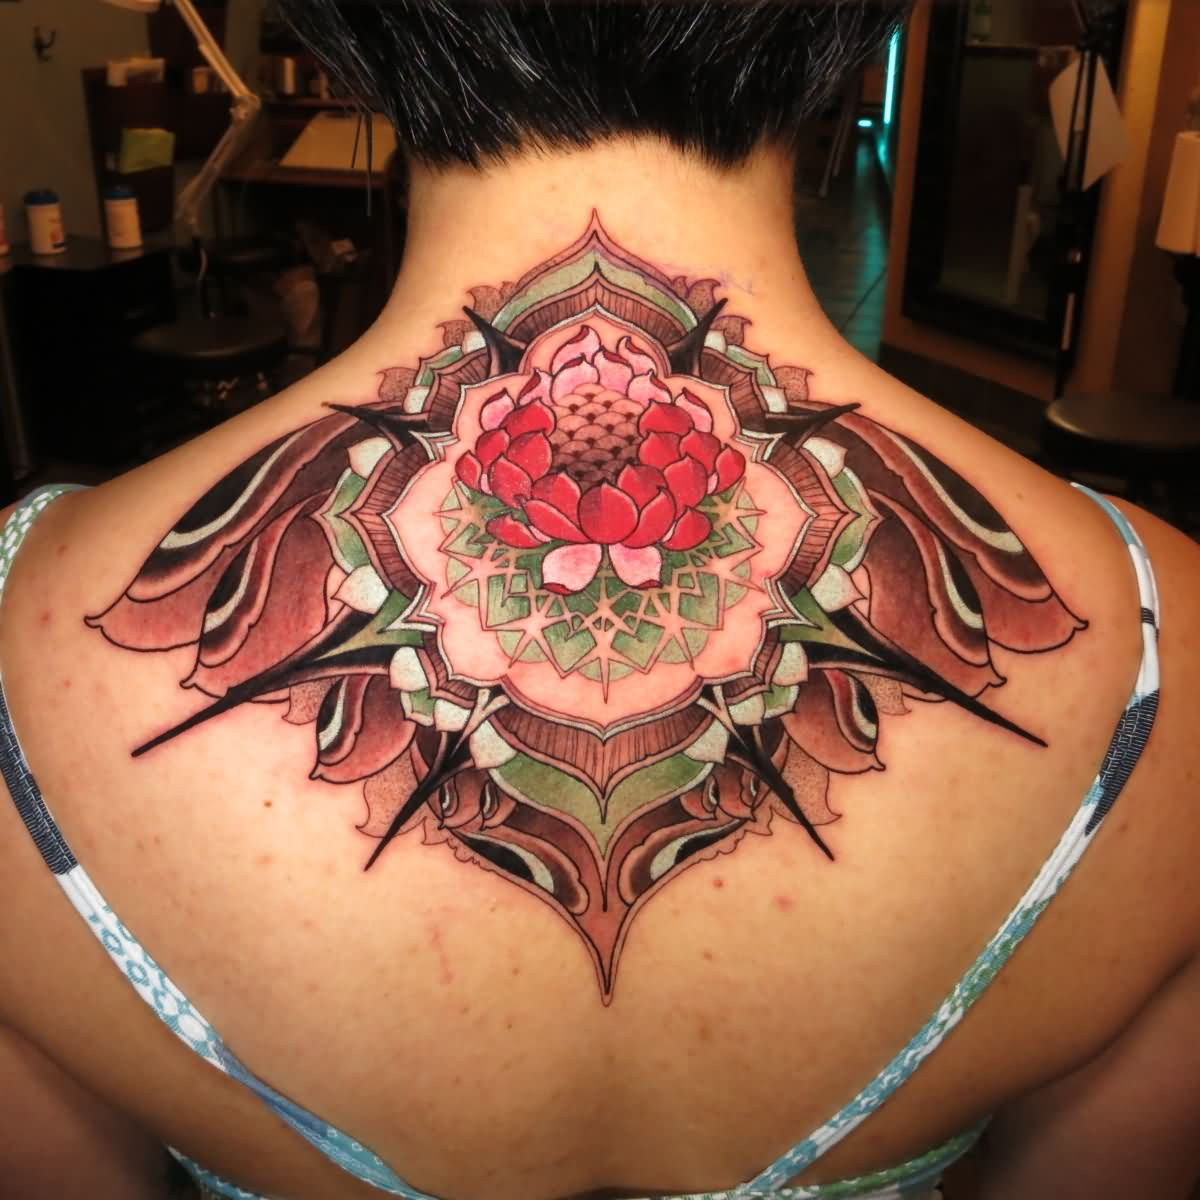 Awesome traditional lotus flower tattoo on women upper back izmirmasajfo